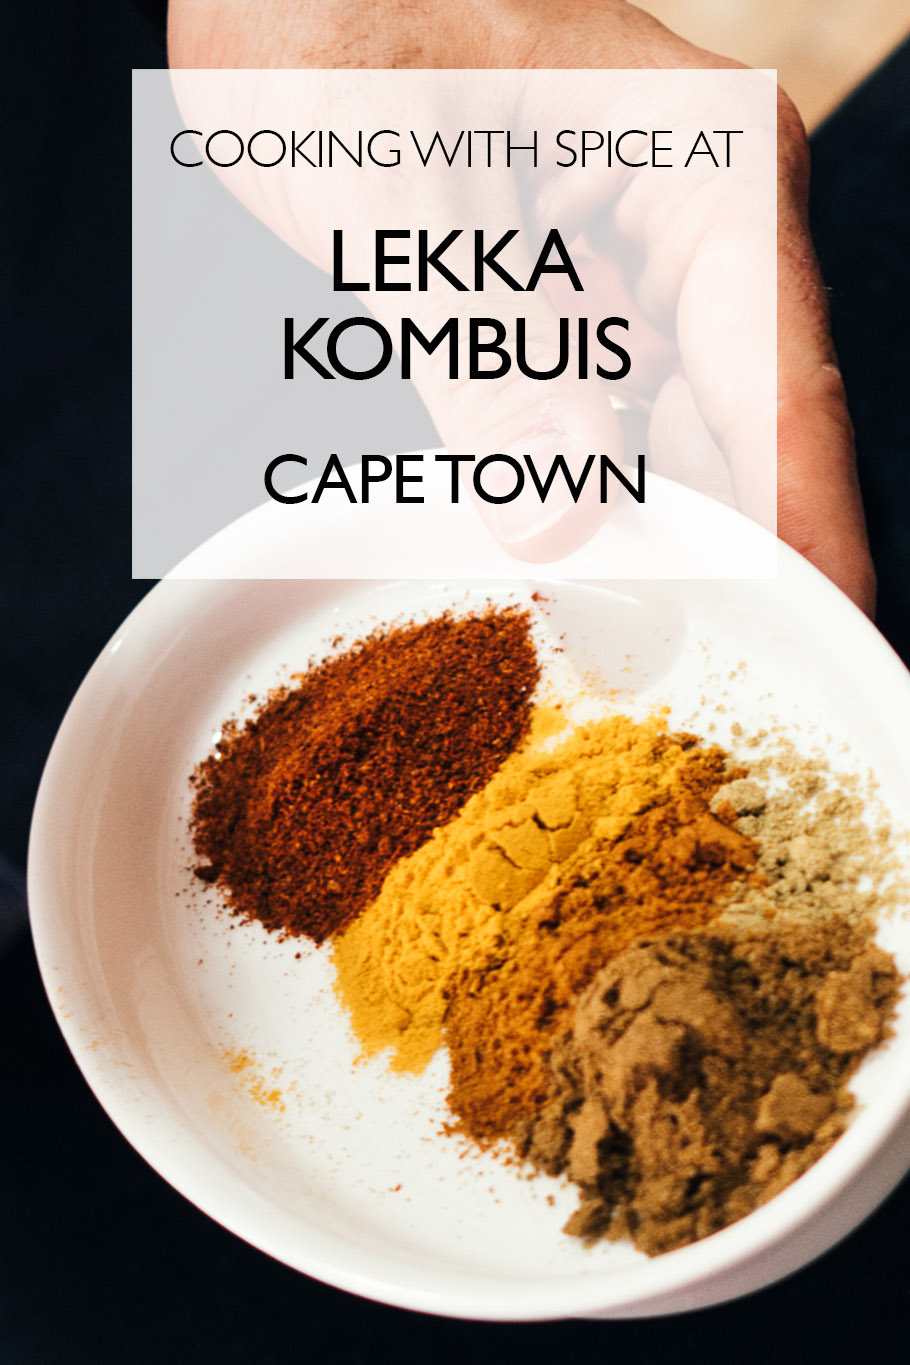 Flavors of the Cape Malay: Cooking with Spice at Lekka Kombuis, Cape Town